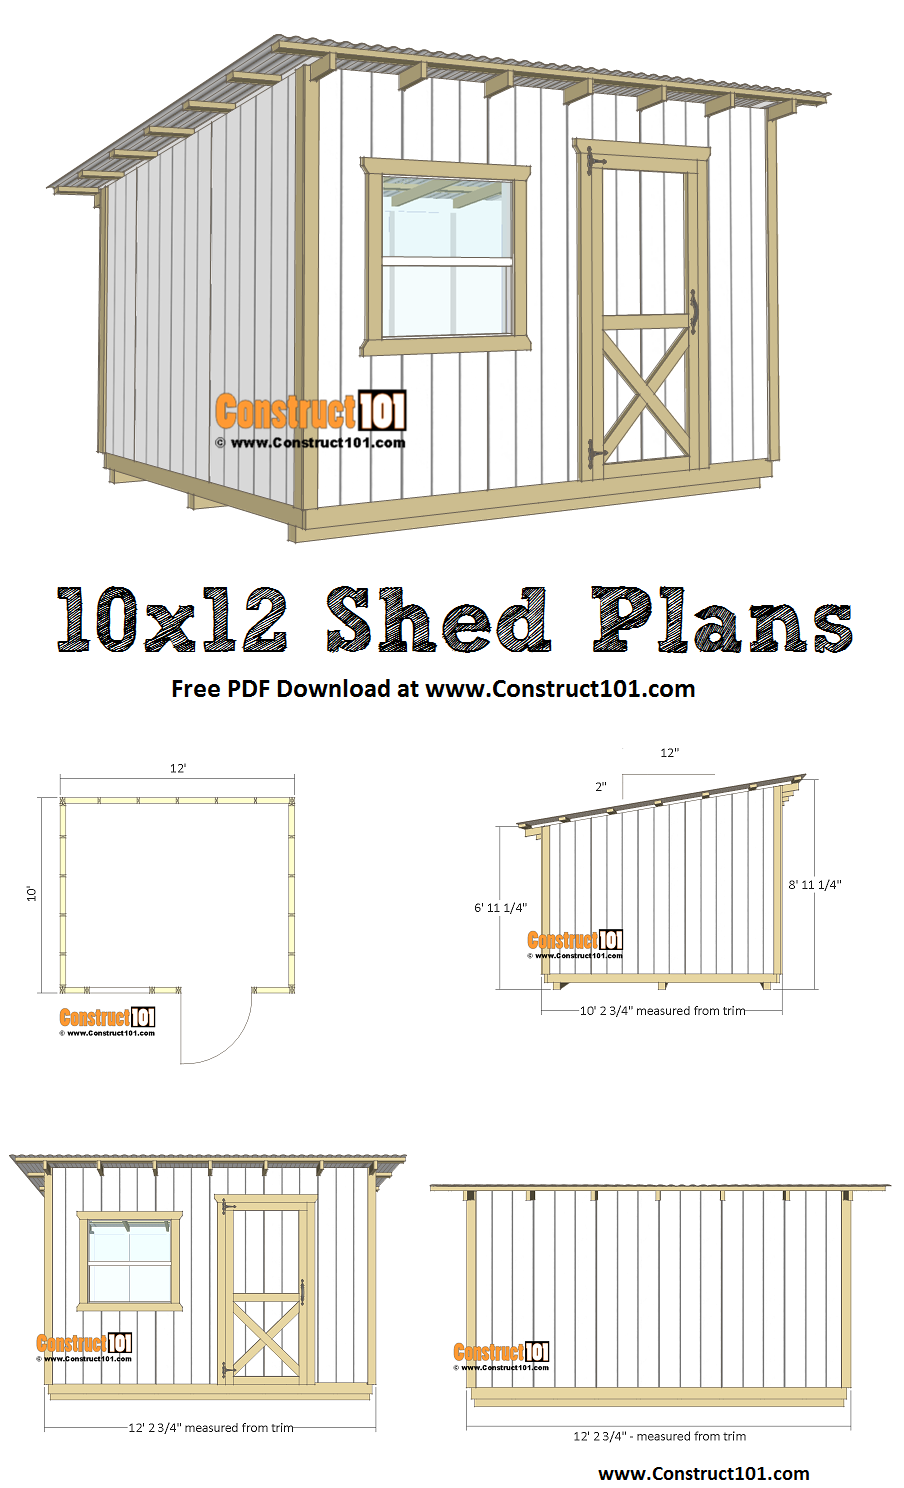 10x12 lean to shed plans - free PDF download, material list, DIY step-by-step, at Construct101.